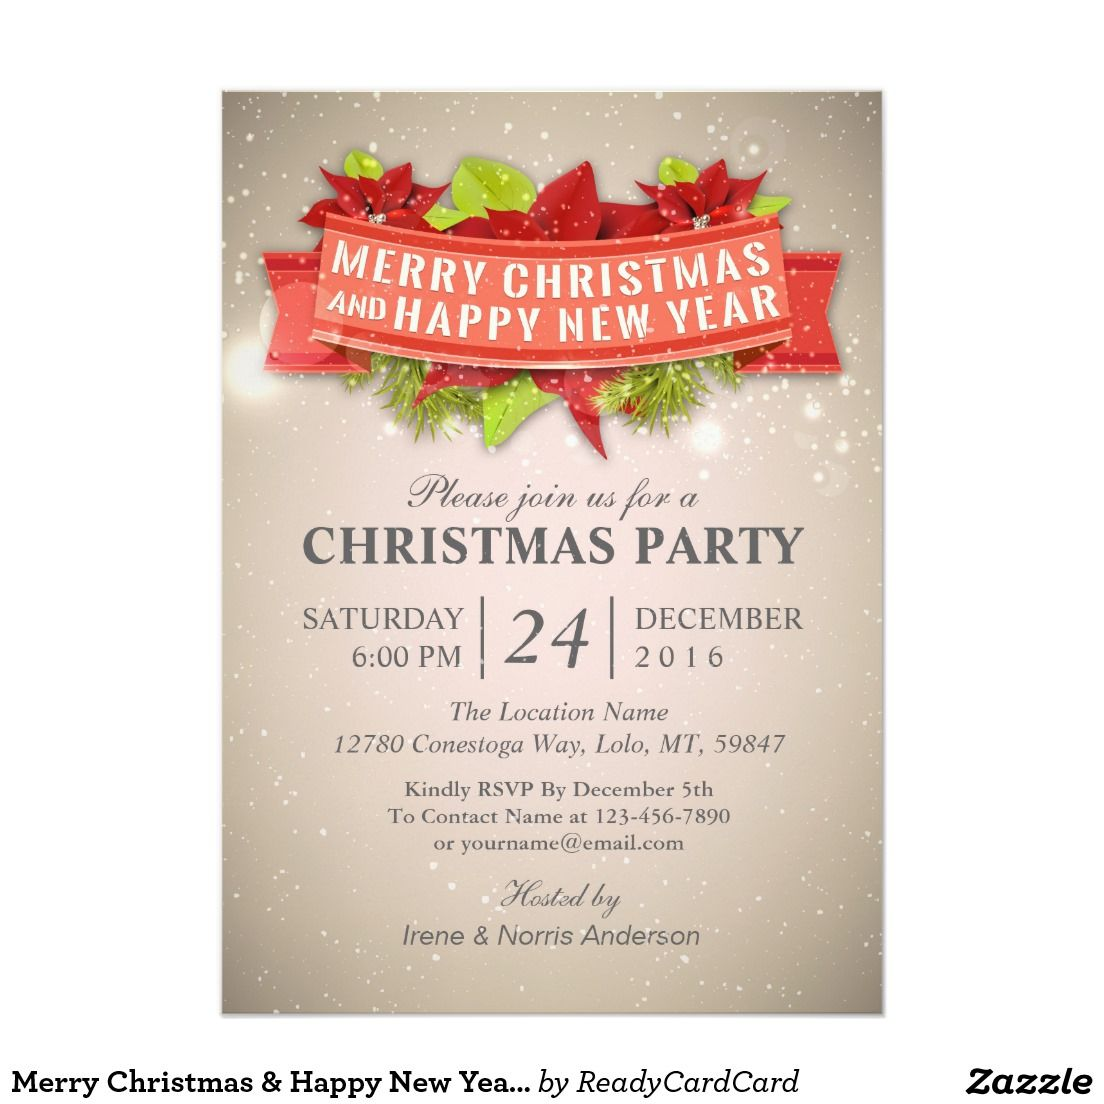 Merry Christmas & Happy New Year Party Invitation | ❤❄Merry ...